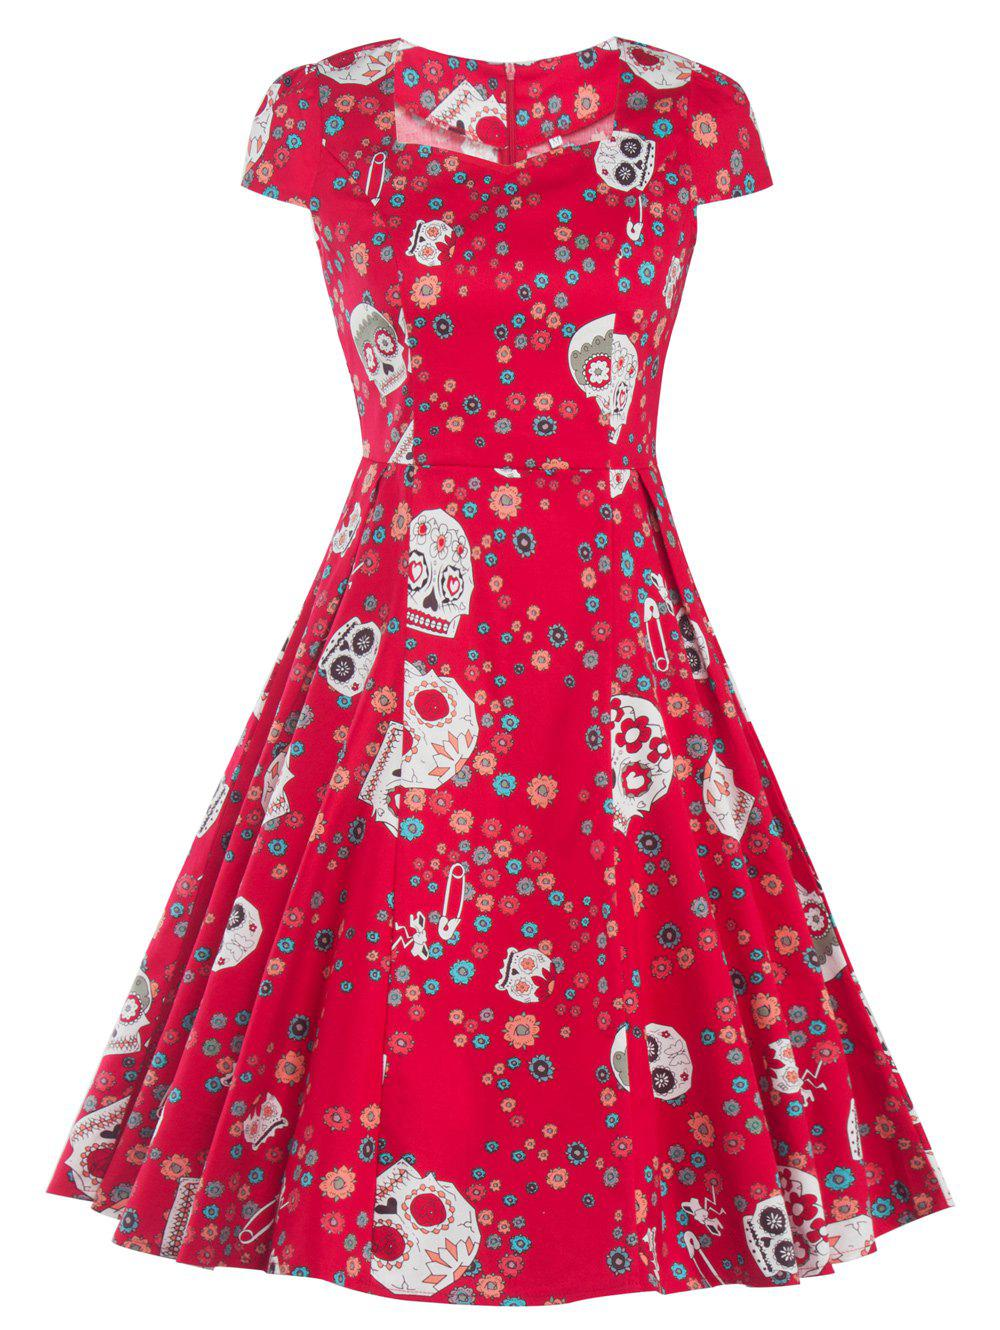 Retro Skull Printed Flare Dress - RED XL